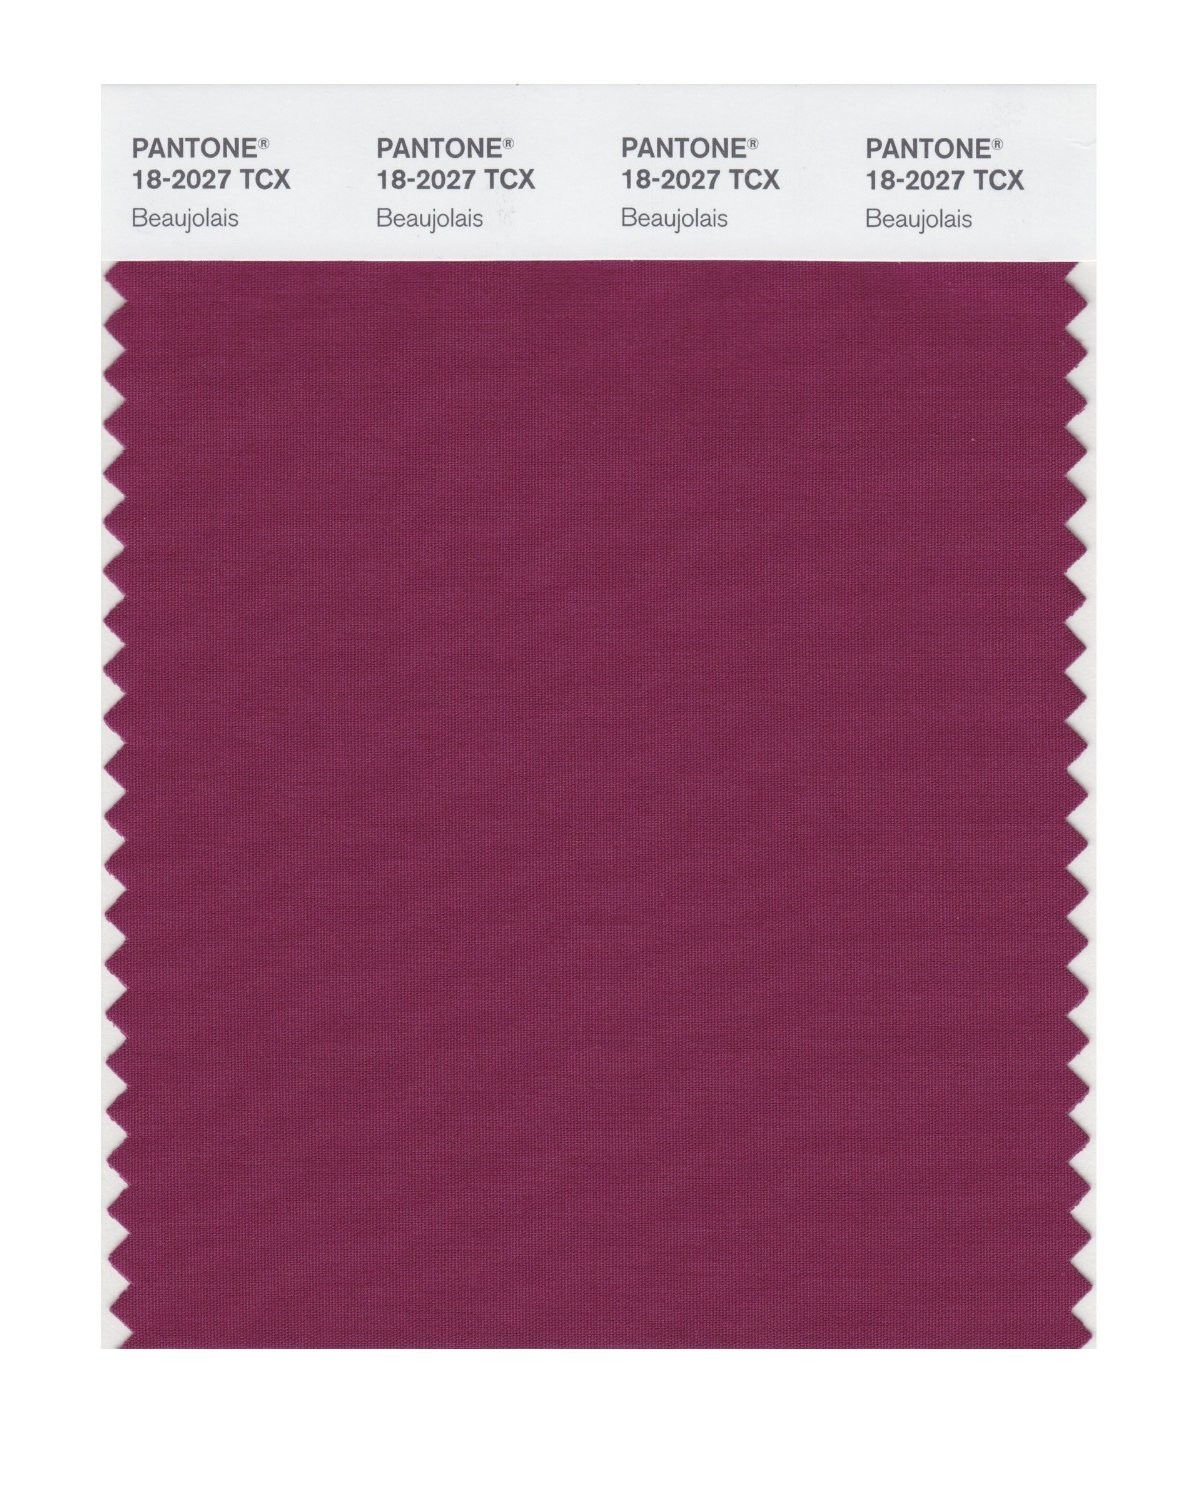 Pantone 18-2027 TCX Swatch Card Beaujolais